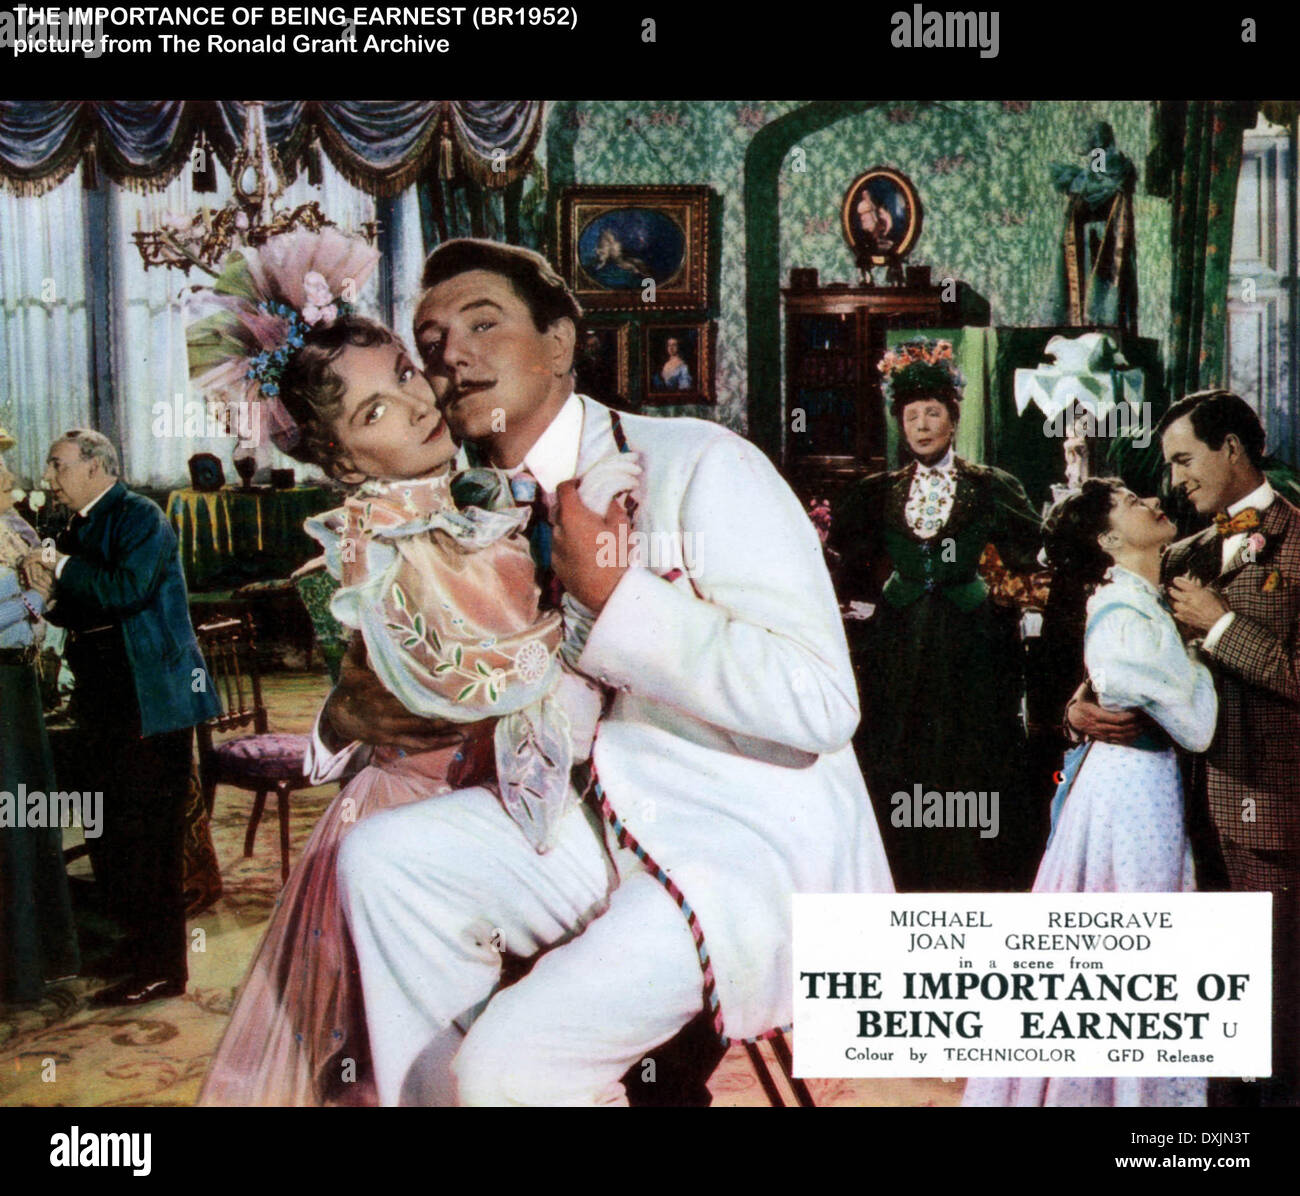 the importance of authorship in film The importance of being earnest (1952) is a british film adaptation of the play by oscar wilde it was directed by anthony asquith, who also adapted the screenplay, and was produced by anthony asquith, teddy baird, and earl st john the story takes place on 14 february 1895.